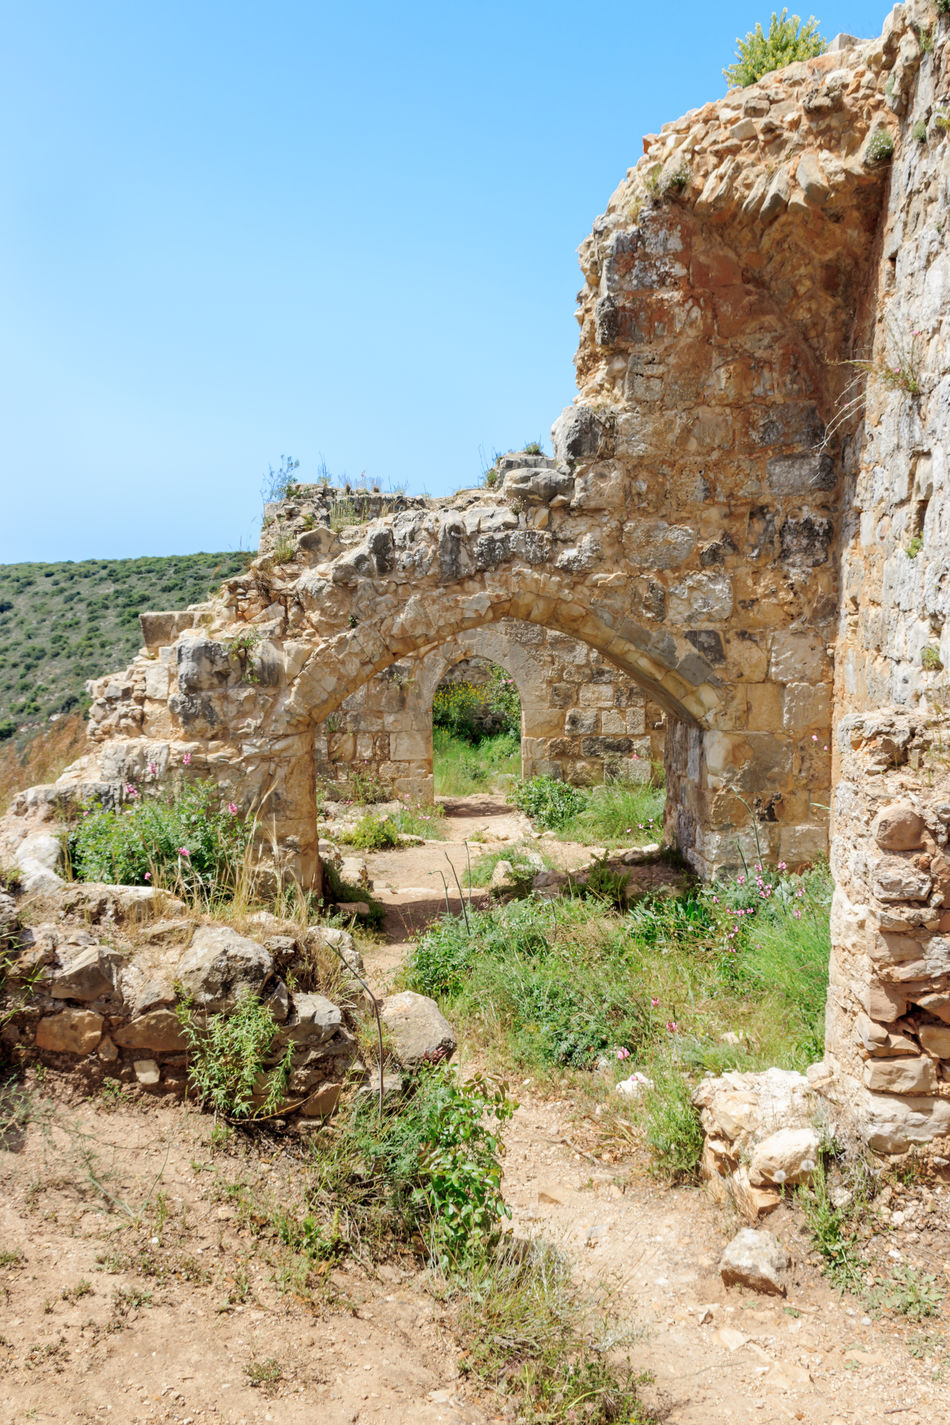 Montfort Castle ruins in northern Israel. Arched passageways through the halls. Ancient Archaeology Architecture Buildings Built Structure Castle Exterior Famous Fort History Landscapes Medieval Monfort Monuments Mountains Nature Object Old Place Protection Ruin Ruined Tourism Travel Wall